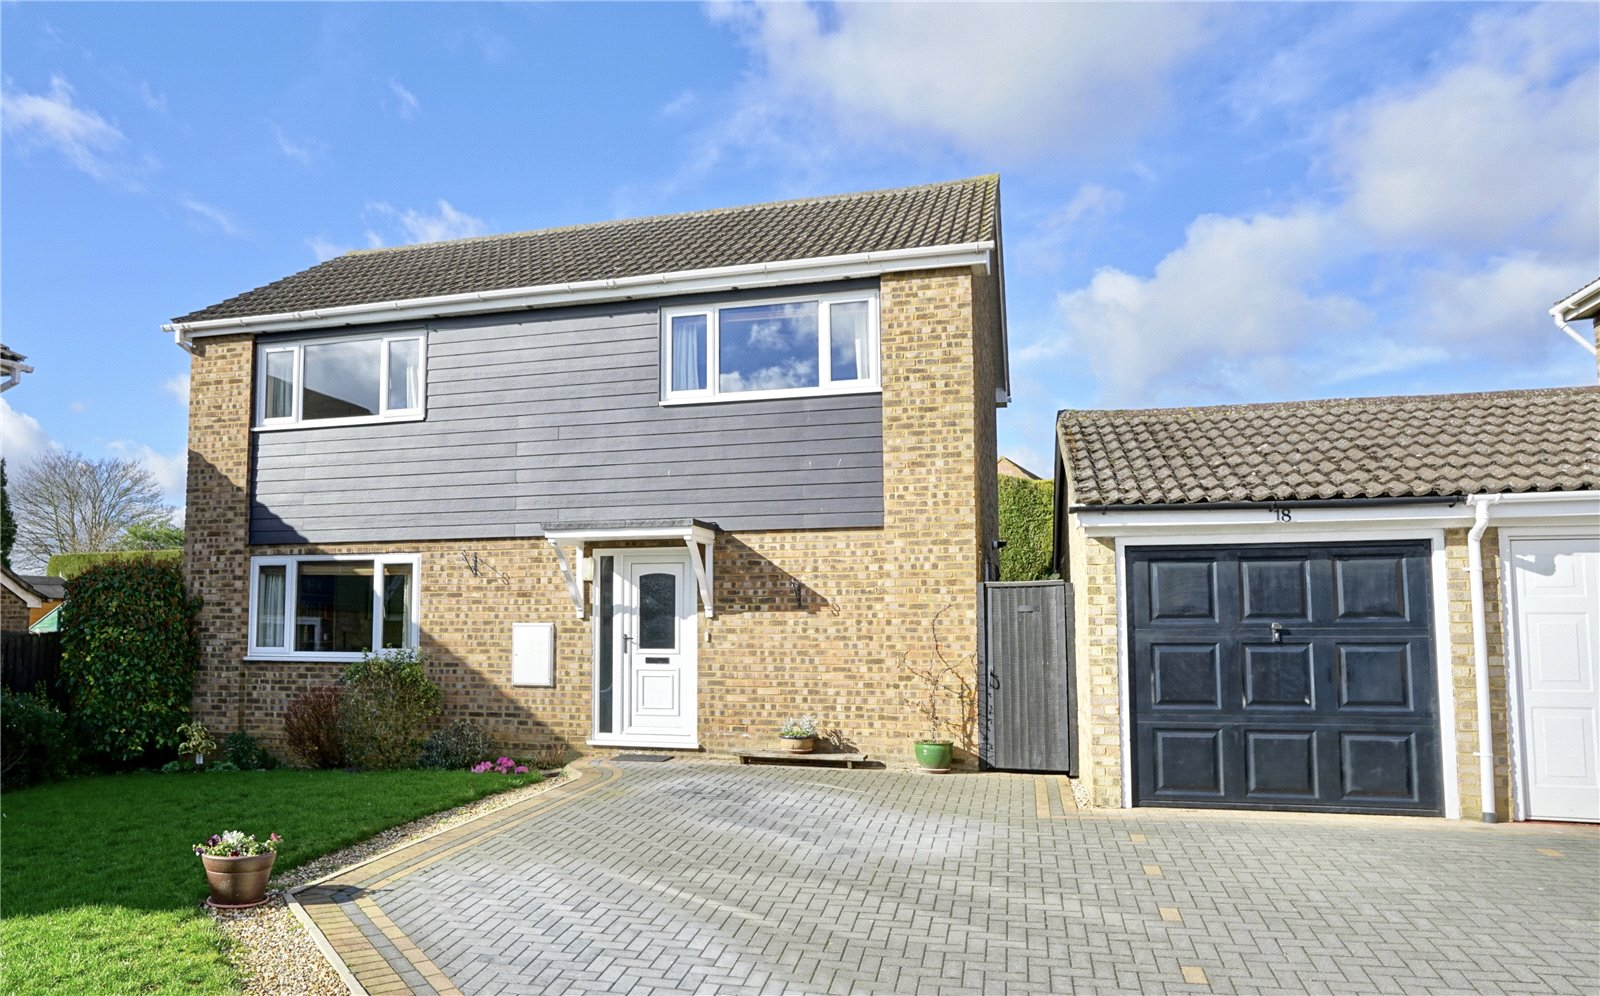 4 bed house for sale in Whistler Road, Eaton Ford  - Property Image 1